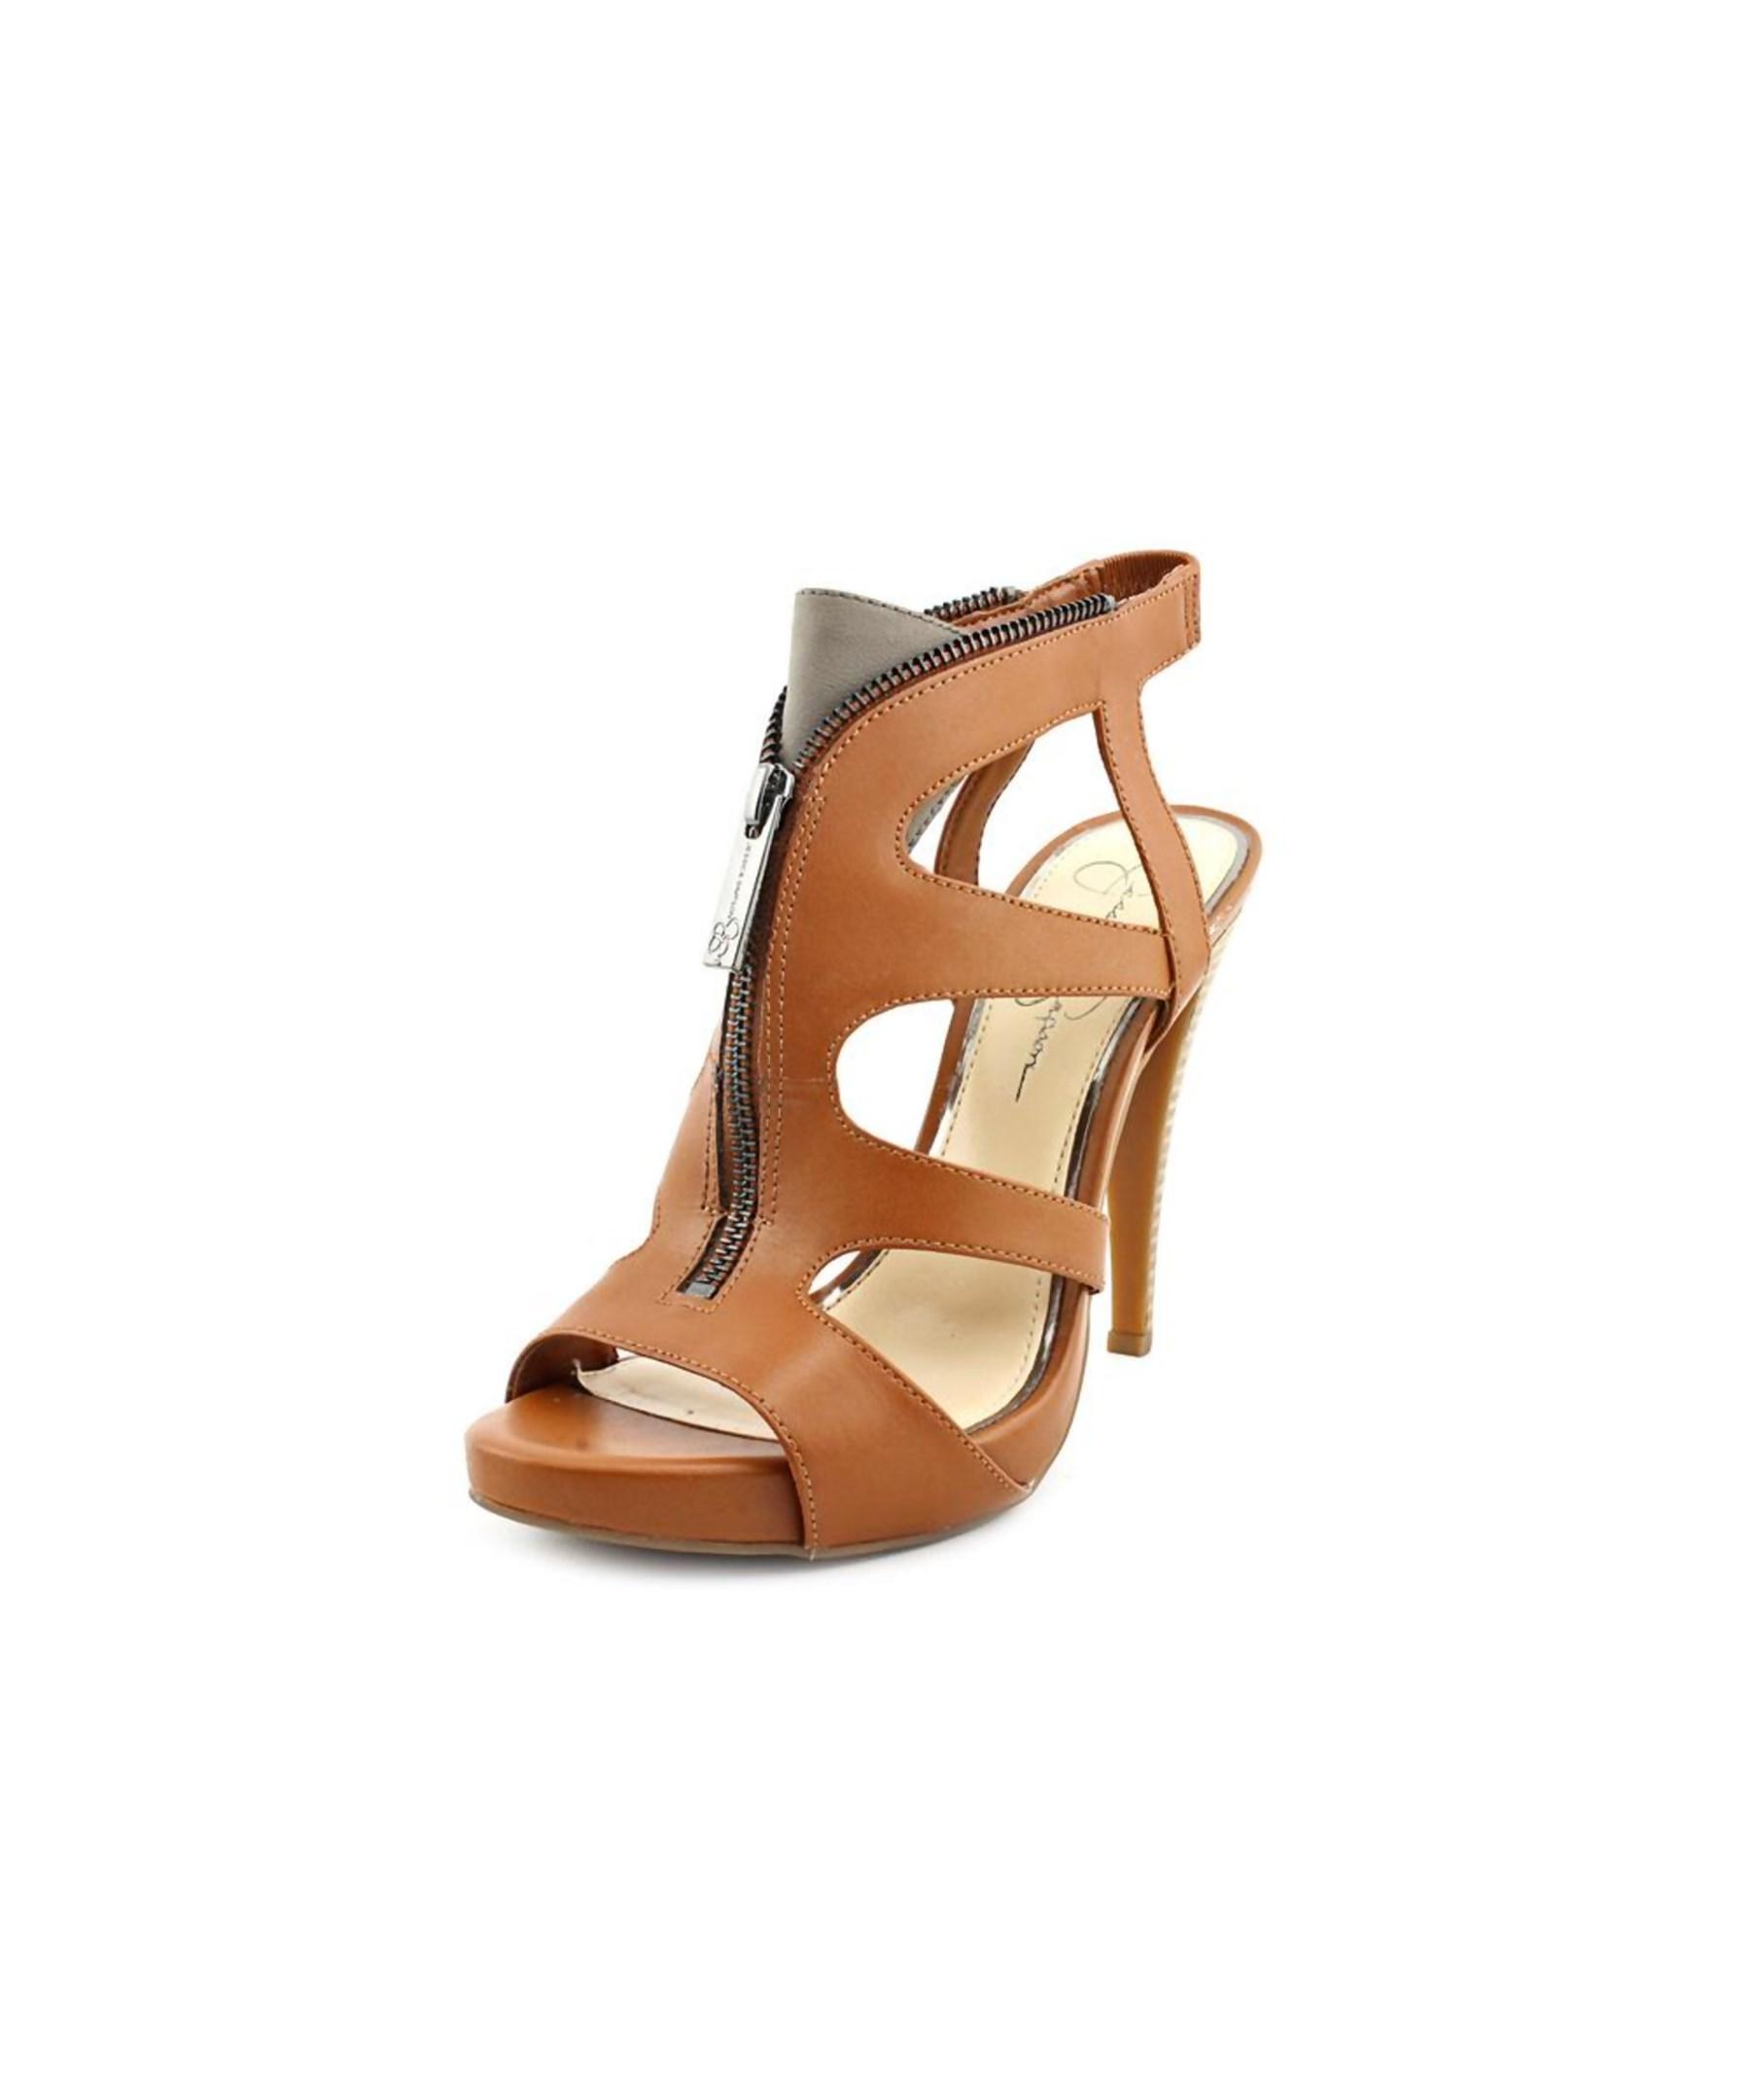 Jessica Simpson Carmyne Open Toe Leather Platform Sandal